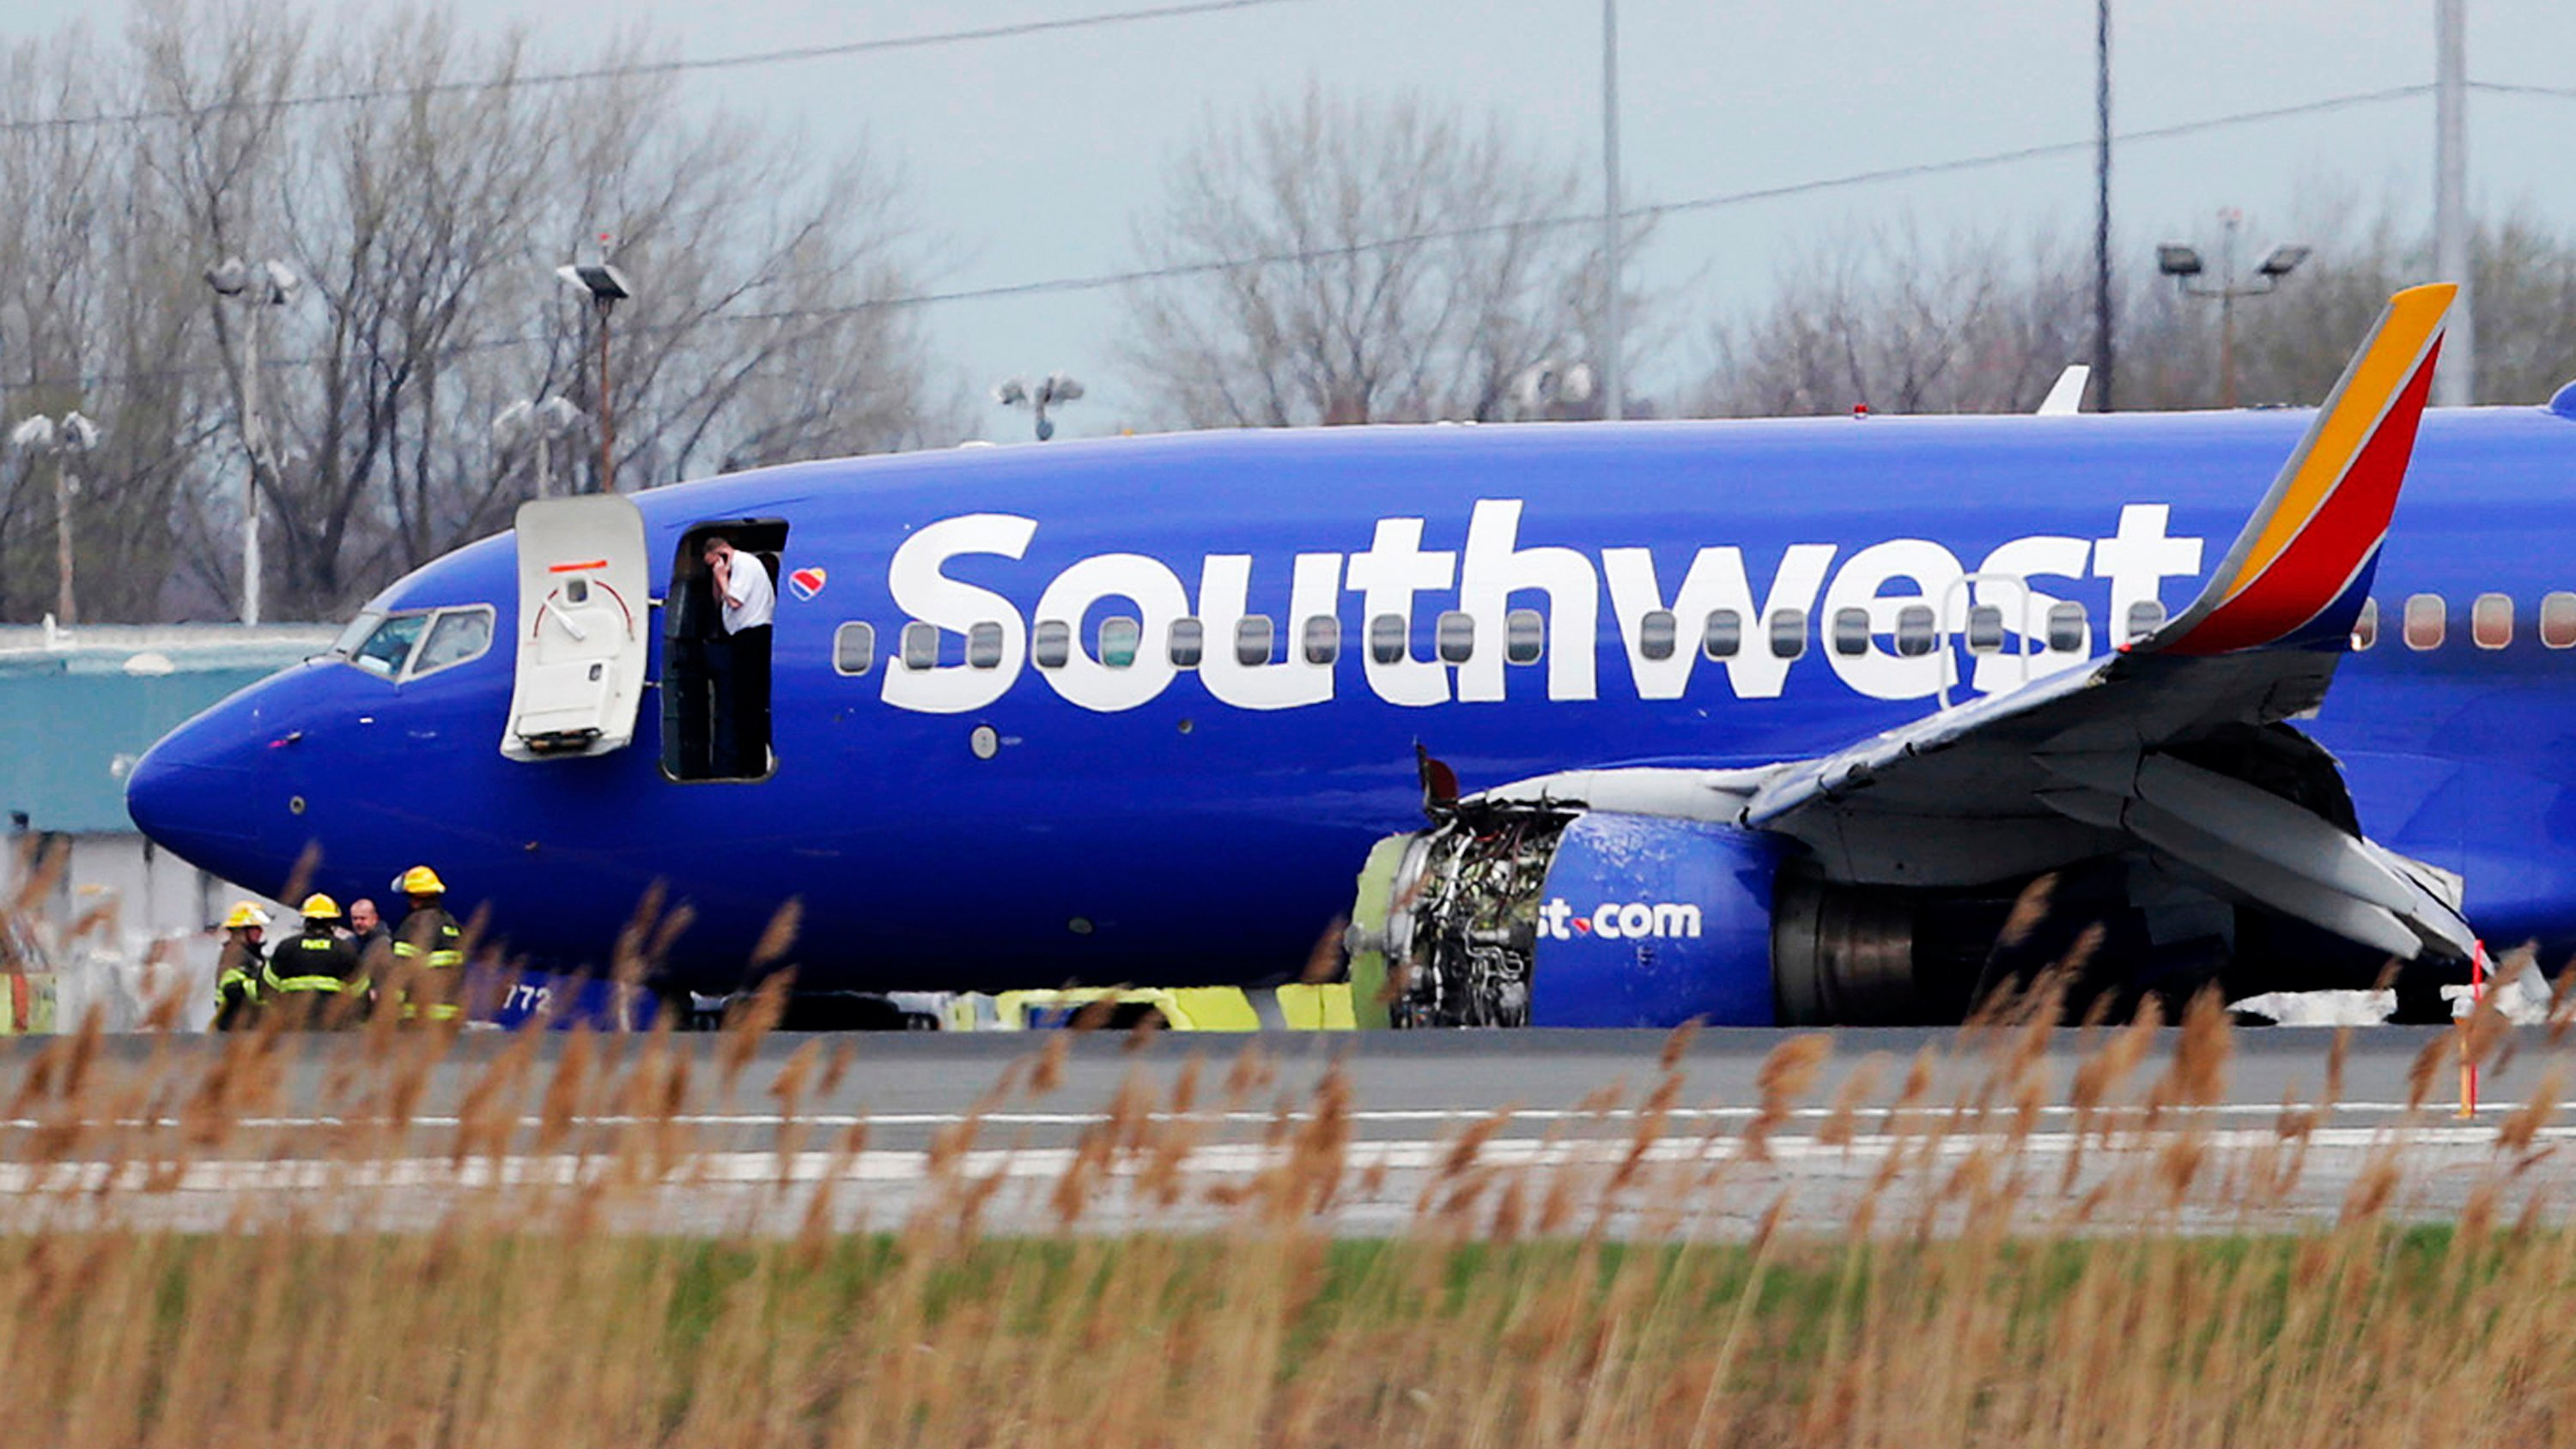 Southwest sends apology, $7K to passengers on damaged jet